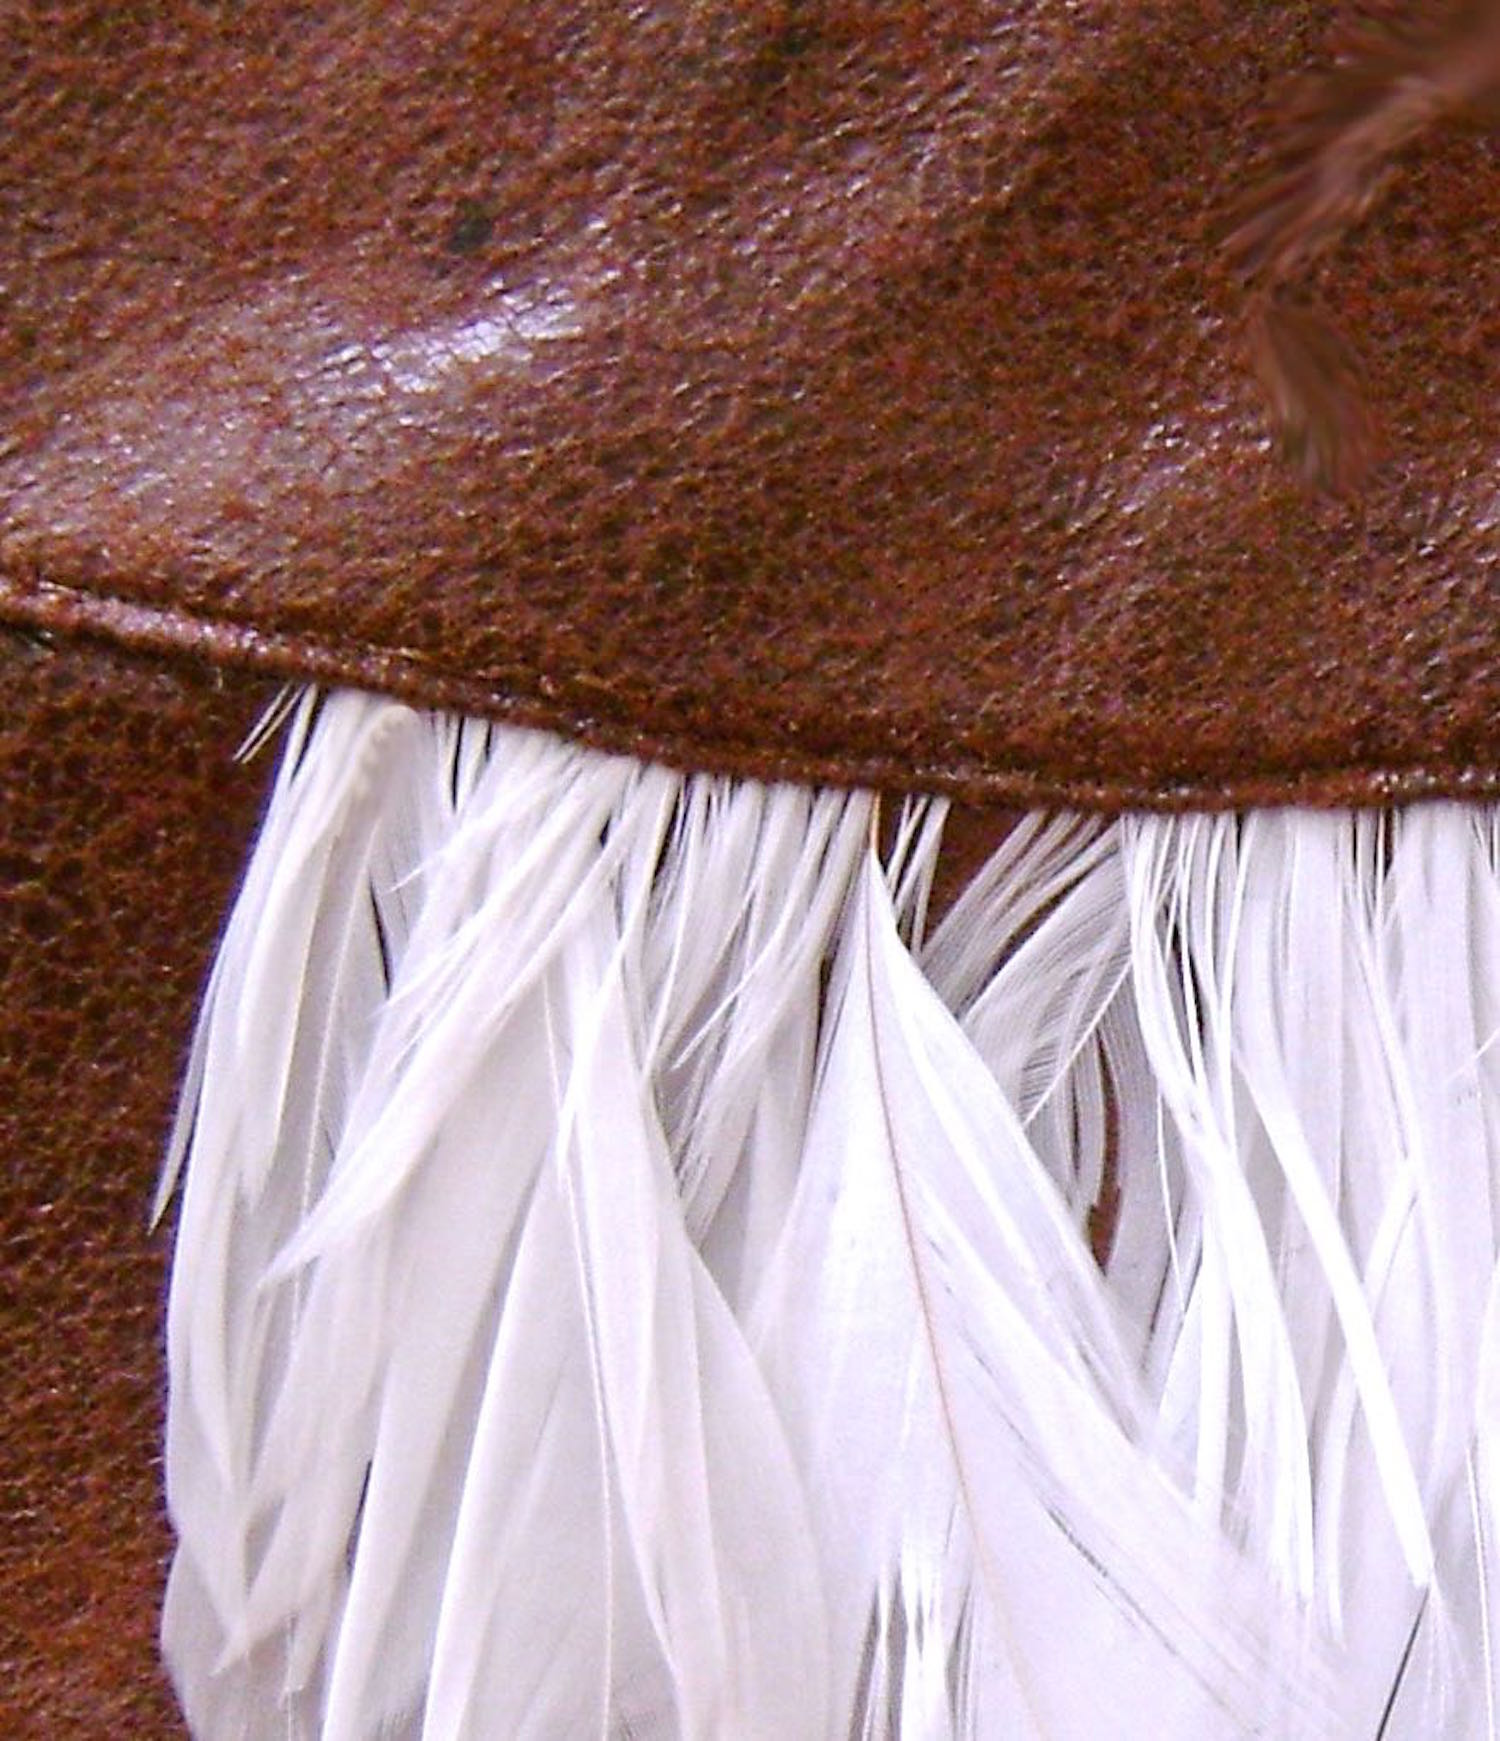 step 6 - Topstitch the cover to the front piece close to the curve and across the feathers.  Attach nail heads to the sides of the feathers to complete the owl design.